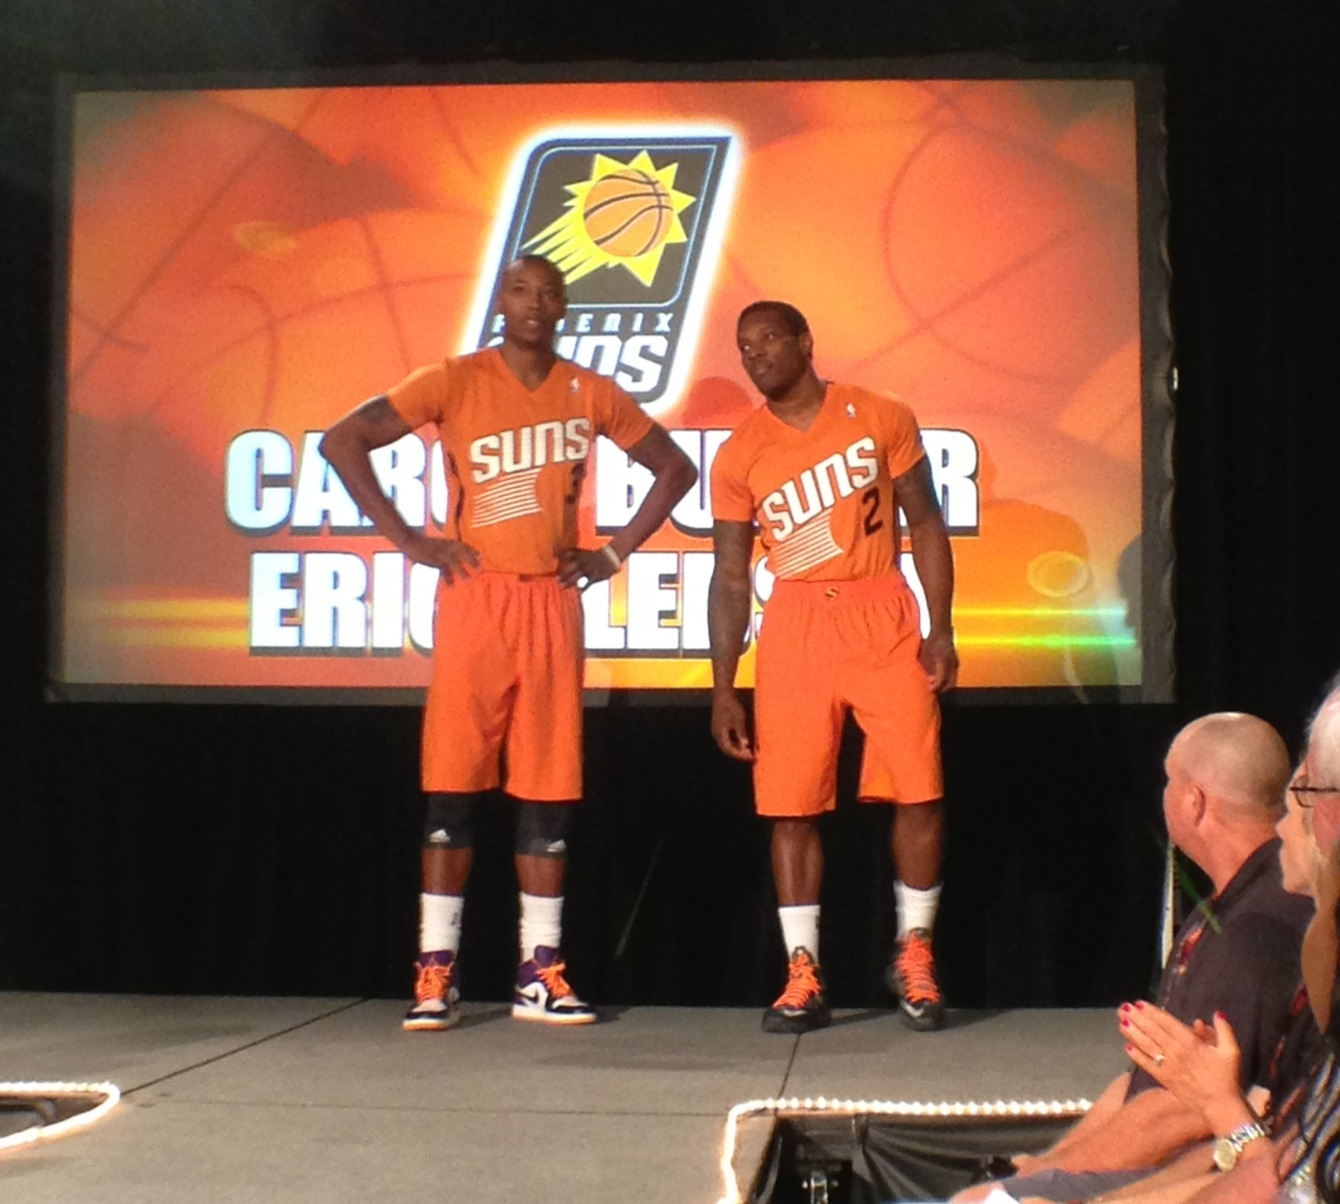 Phoenix Suns New Uniform's Unveiled By: Nicolette Monroe